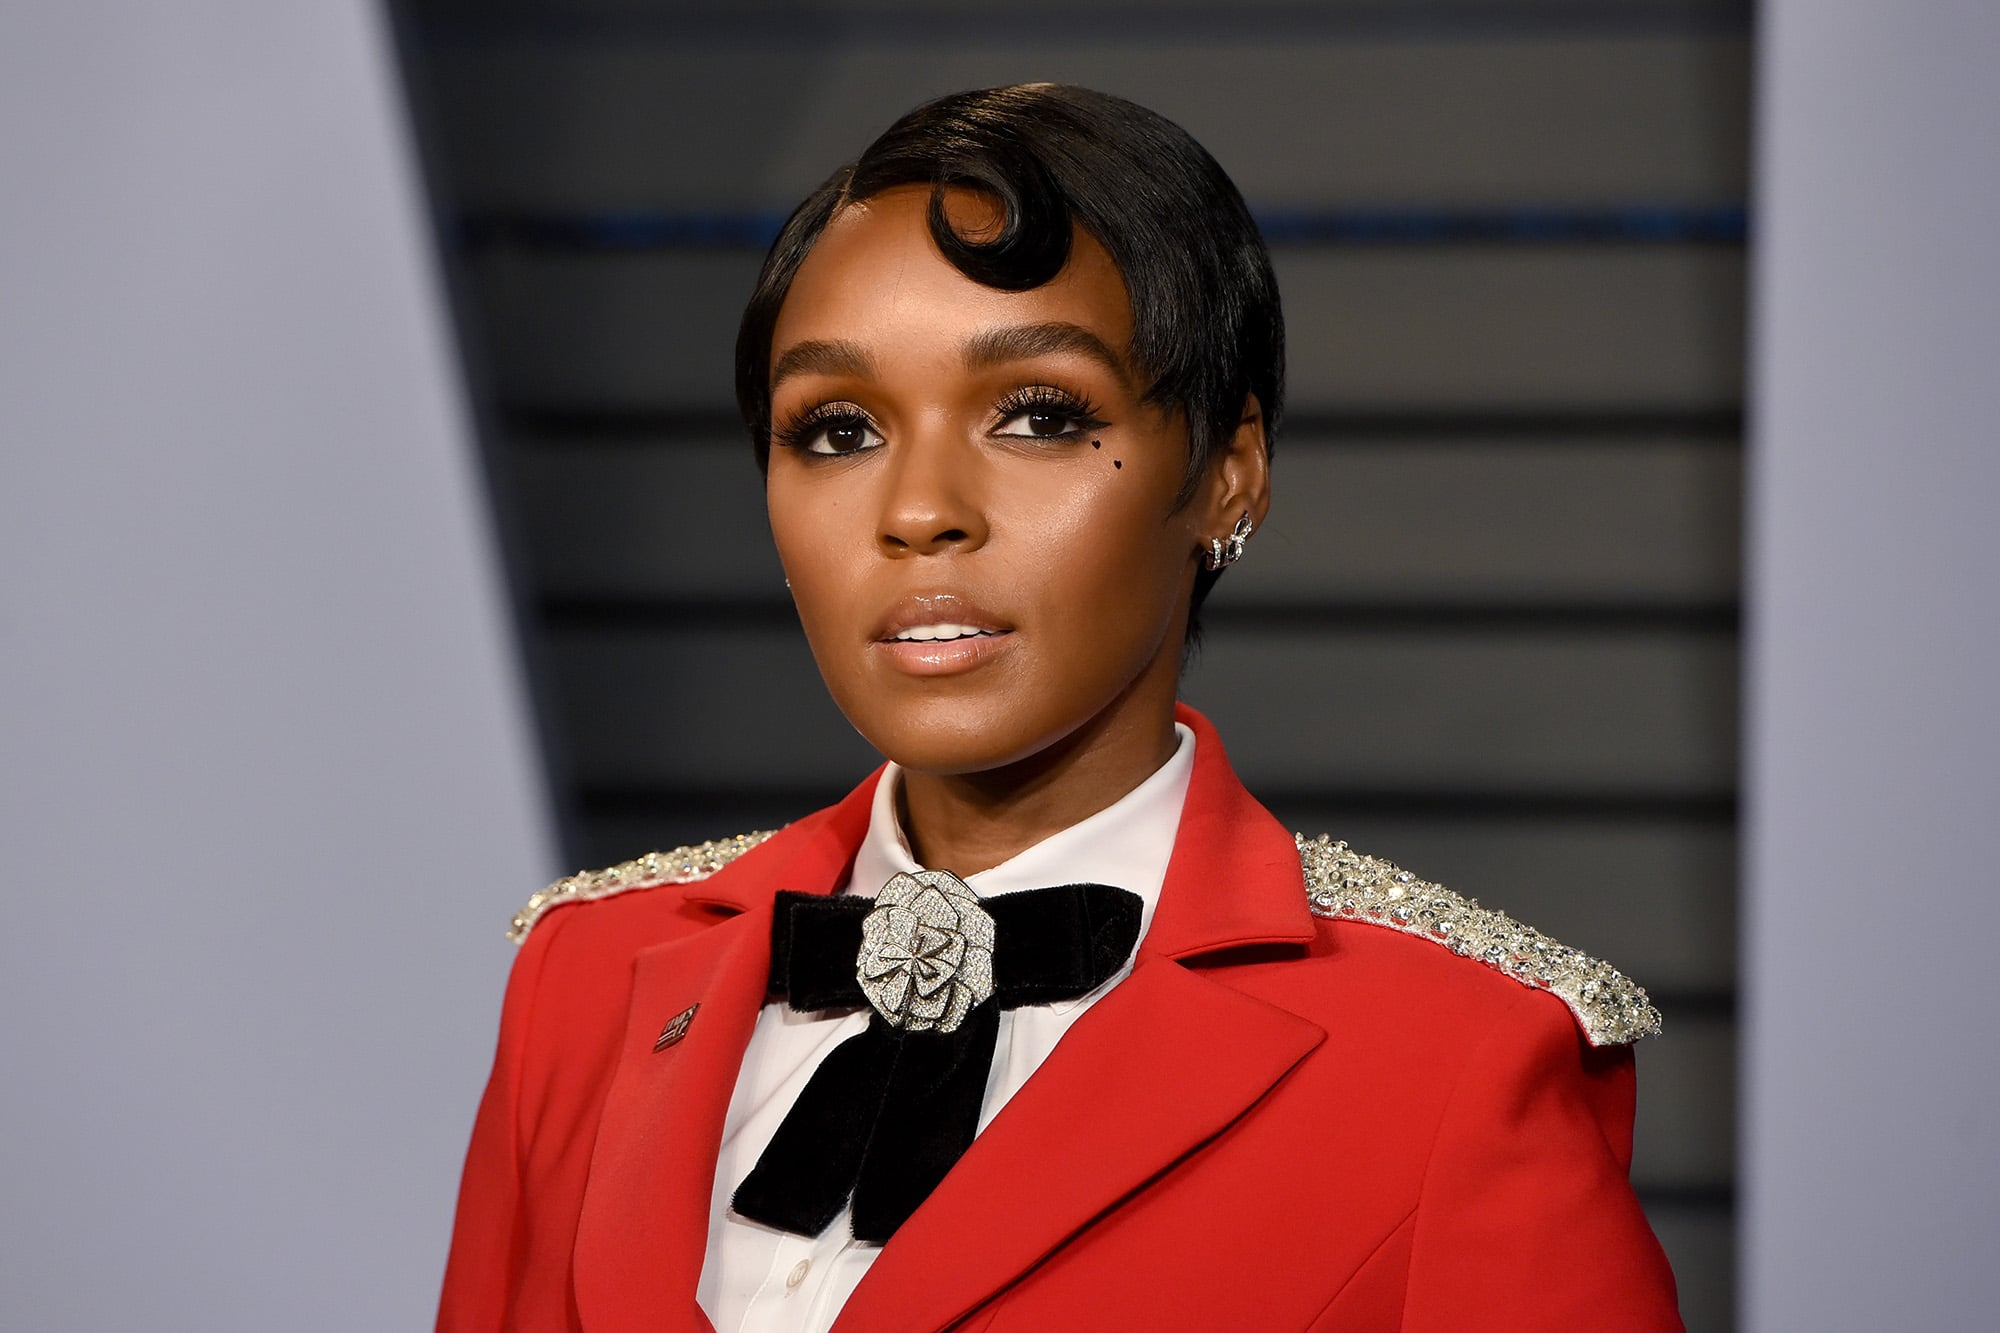 Janelle Monáe American Singer, SongWriter, Rapper, Actress, Producer